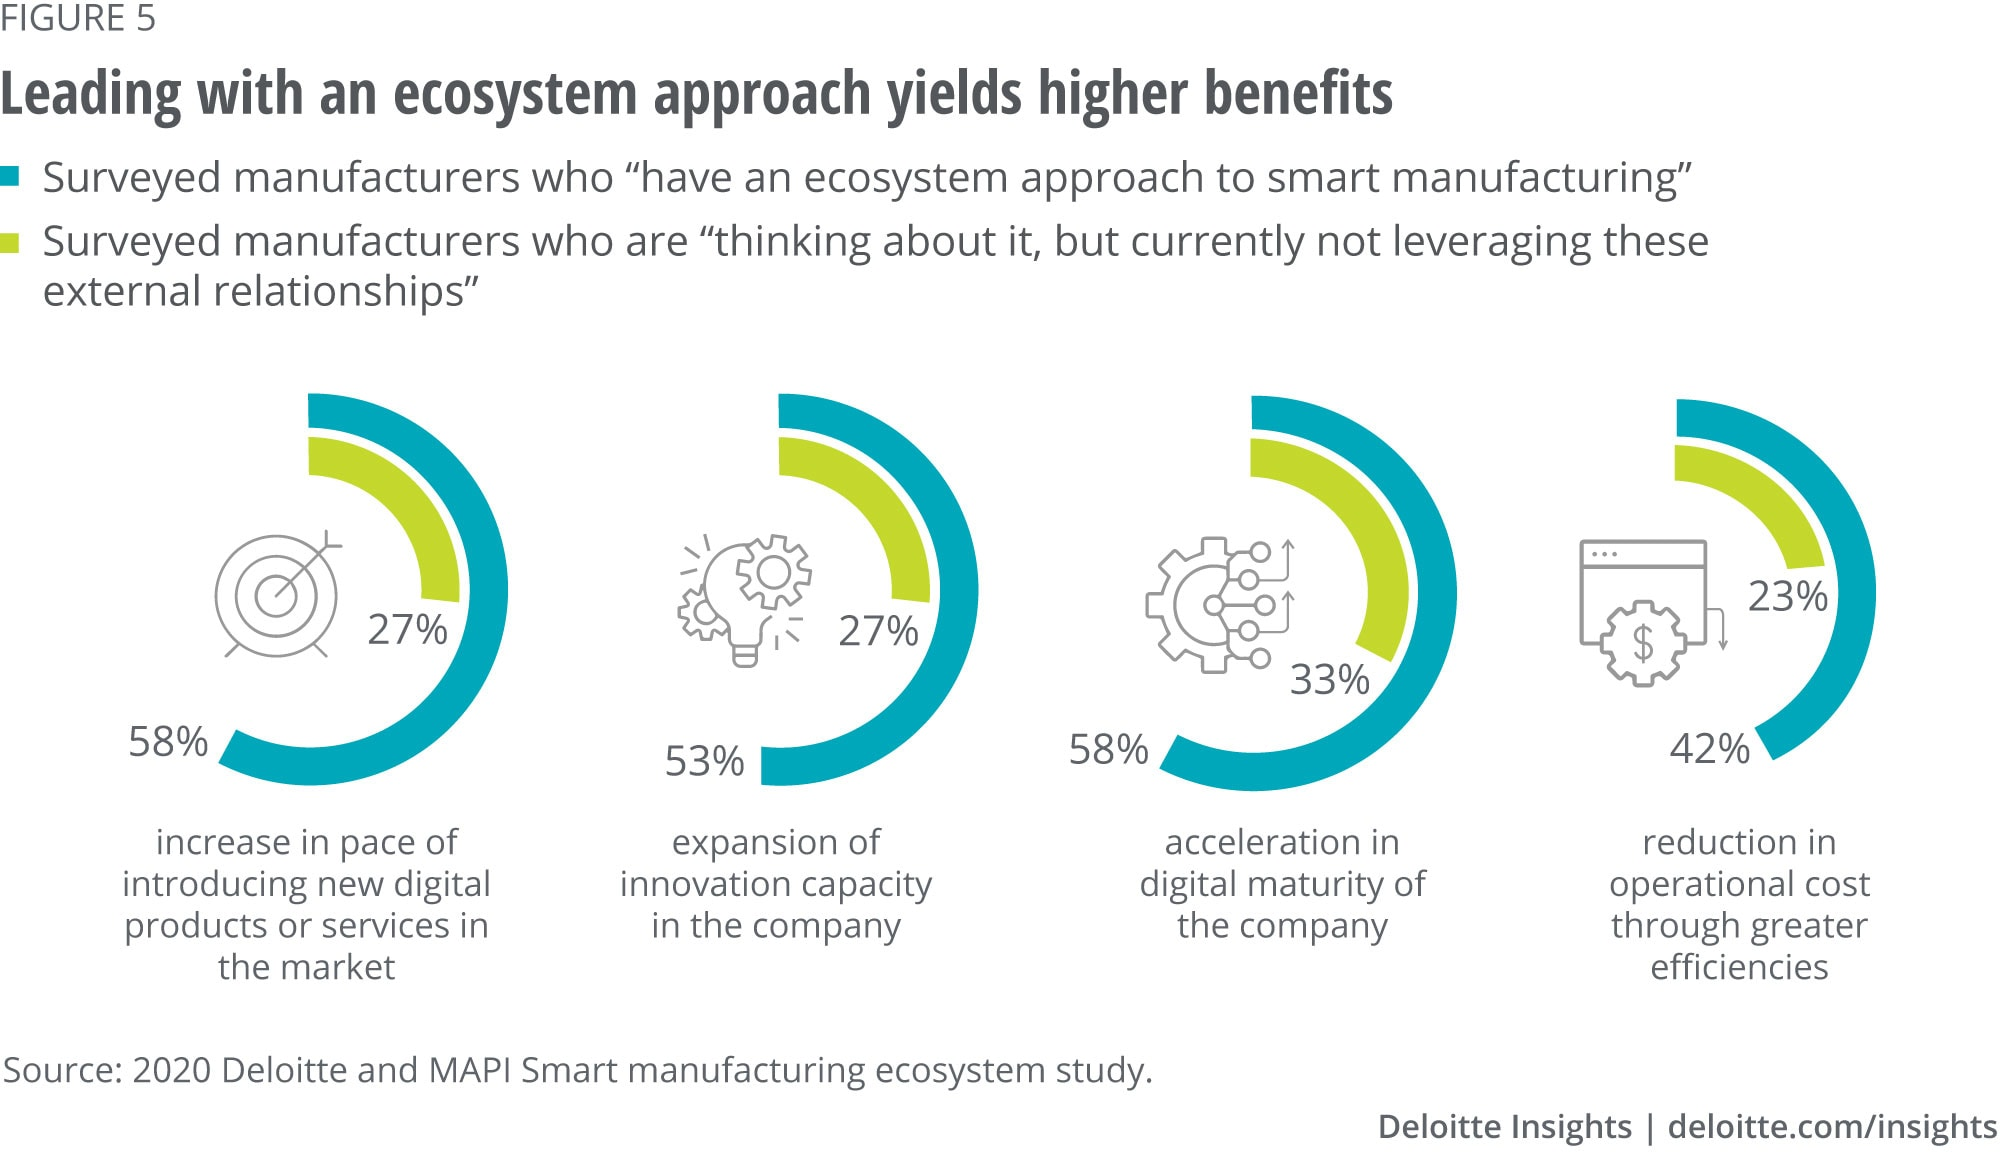 Leading with an ecosystem approach can yield higher benefits